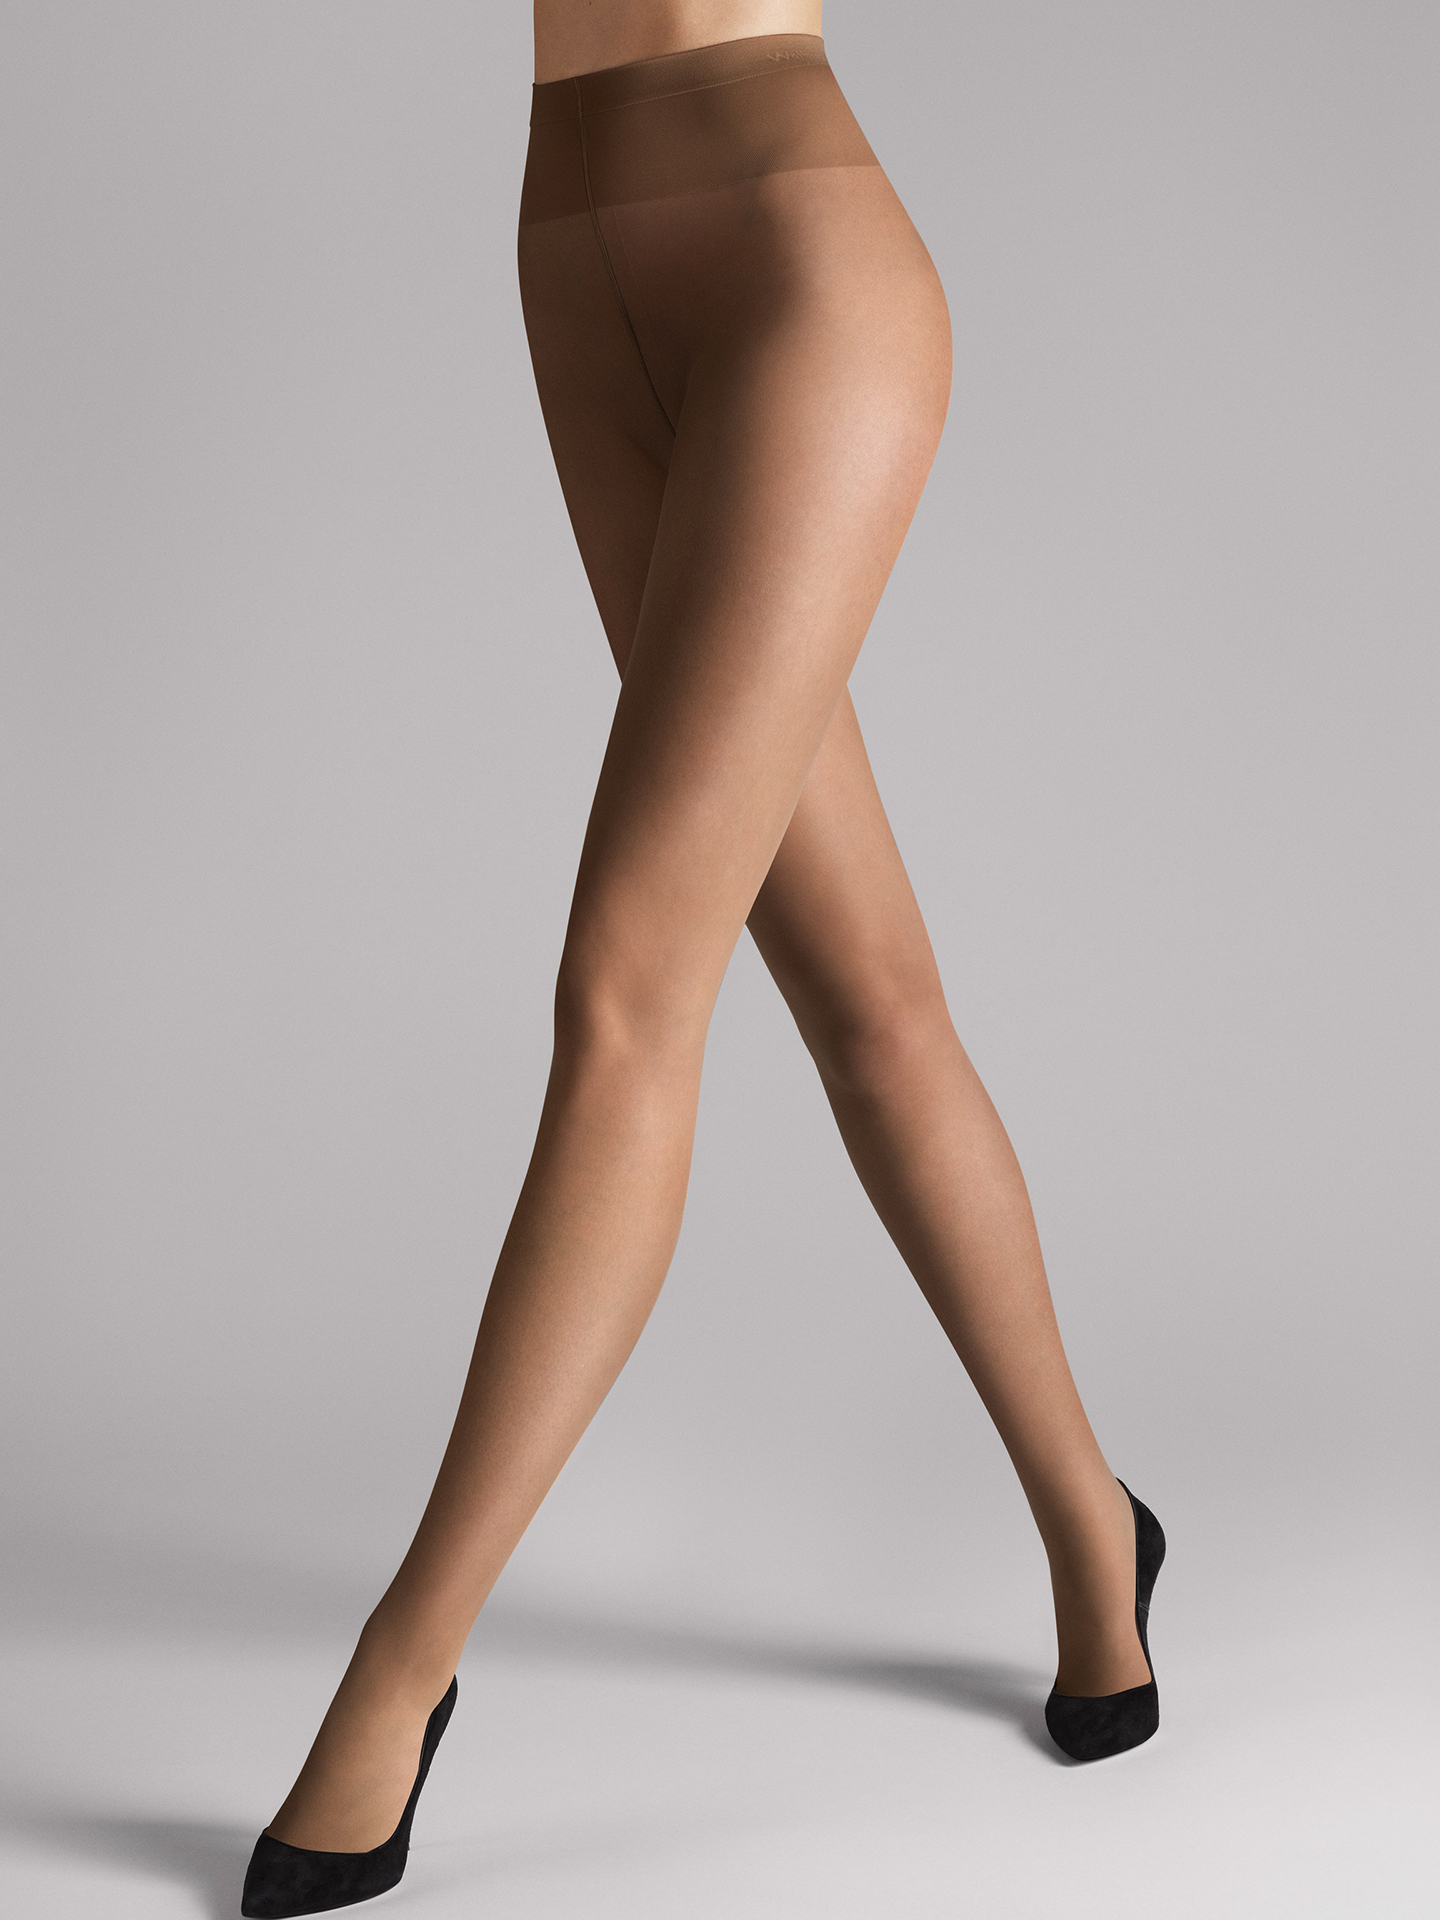 Wolford Apparel & Accessories > Clothing > Collant Individual 10 - 4023 - S